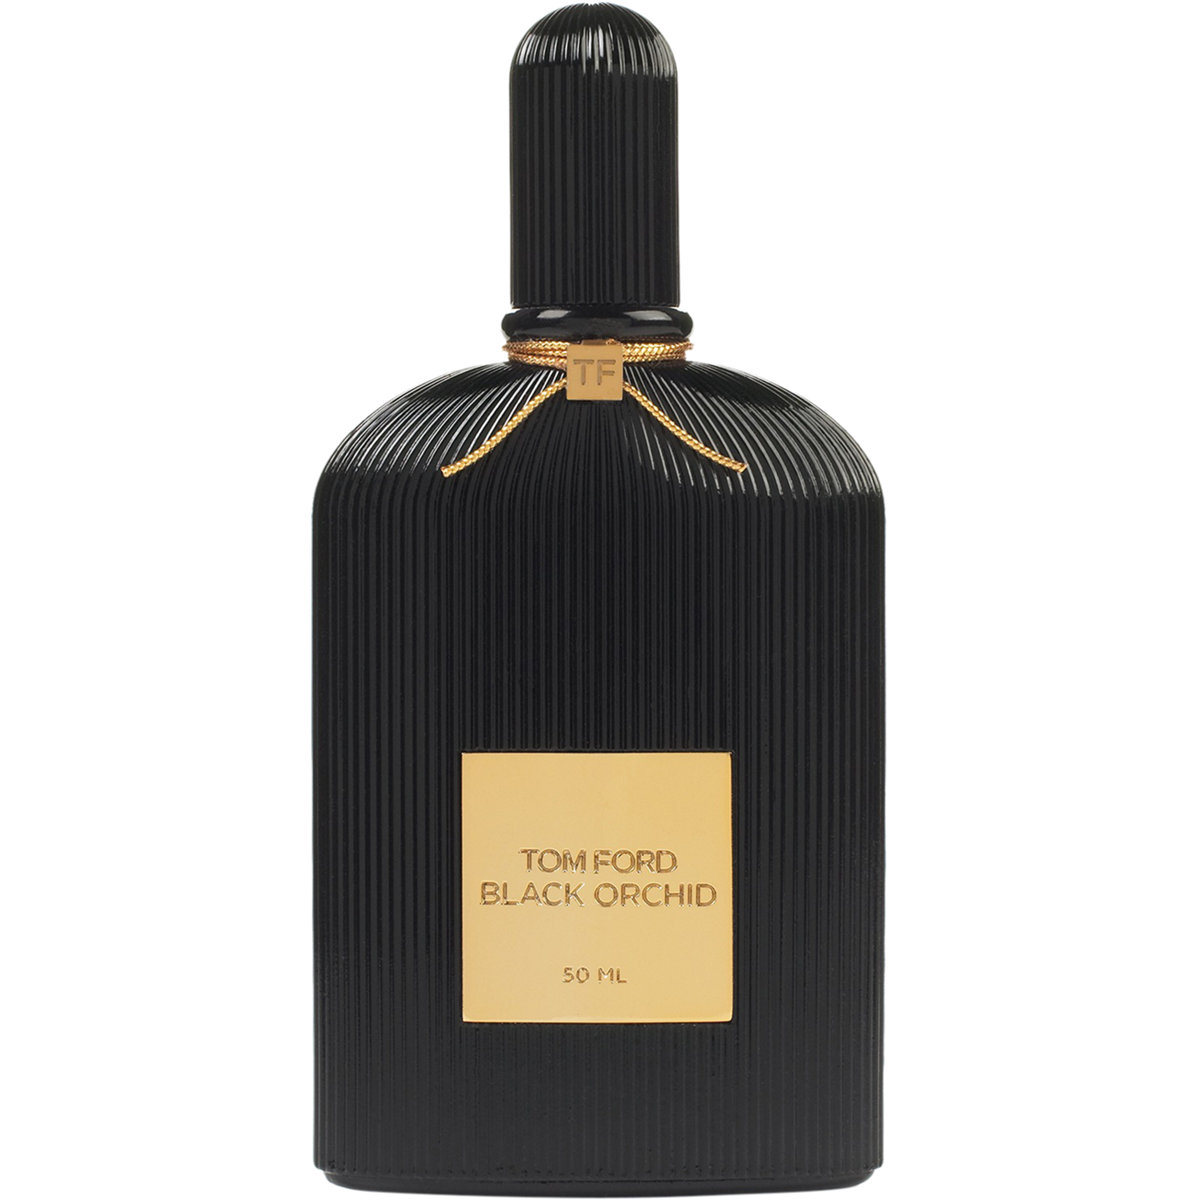 tom ford black orchid eau de parfum 29 gifts our editors are smitten with t. Cars Review. Best American Auto & Cars Review